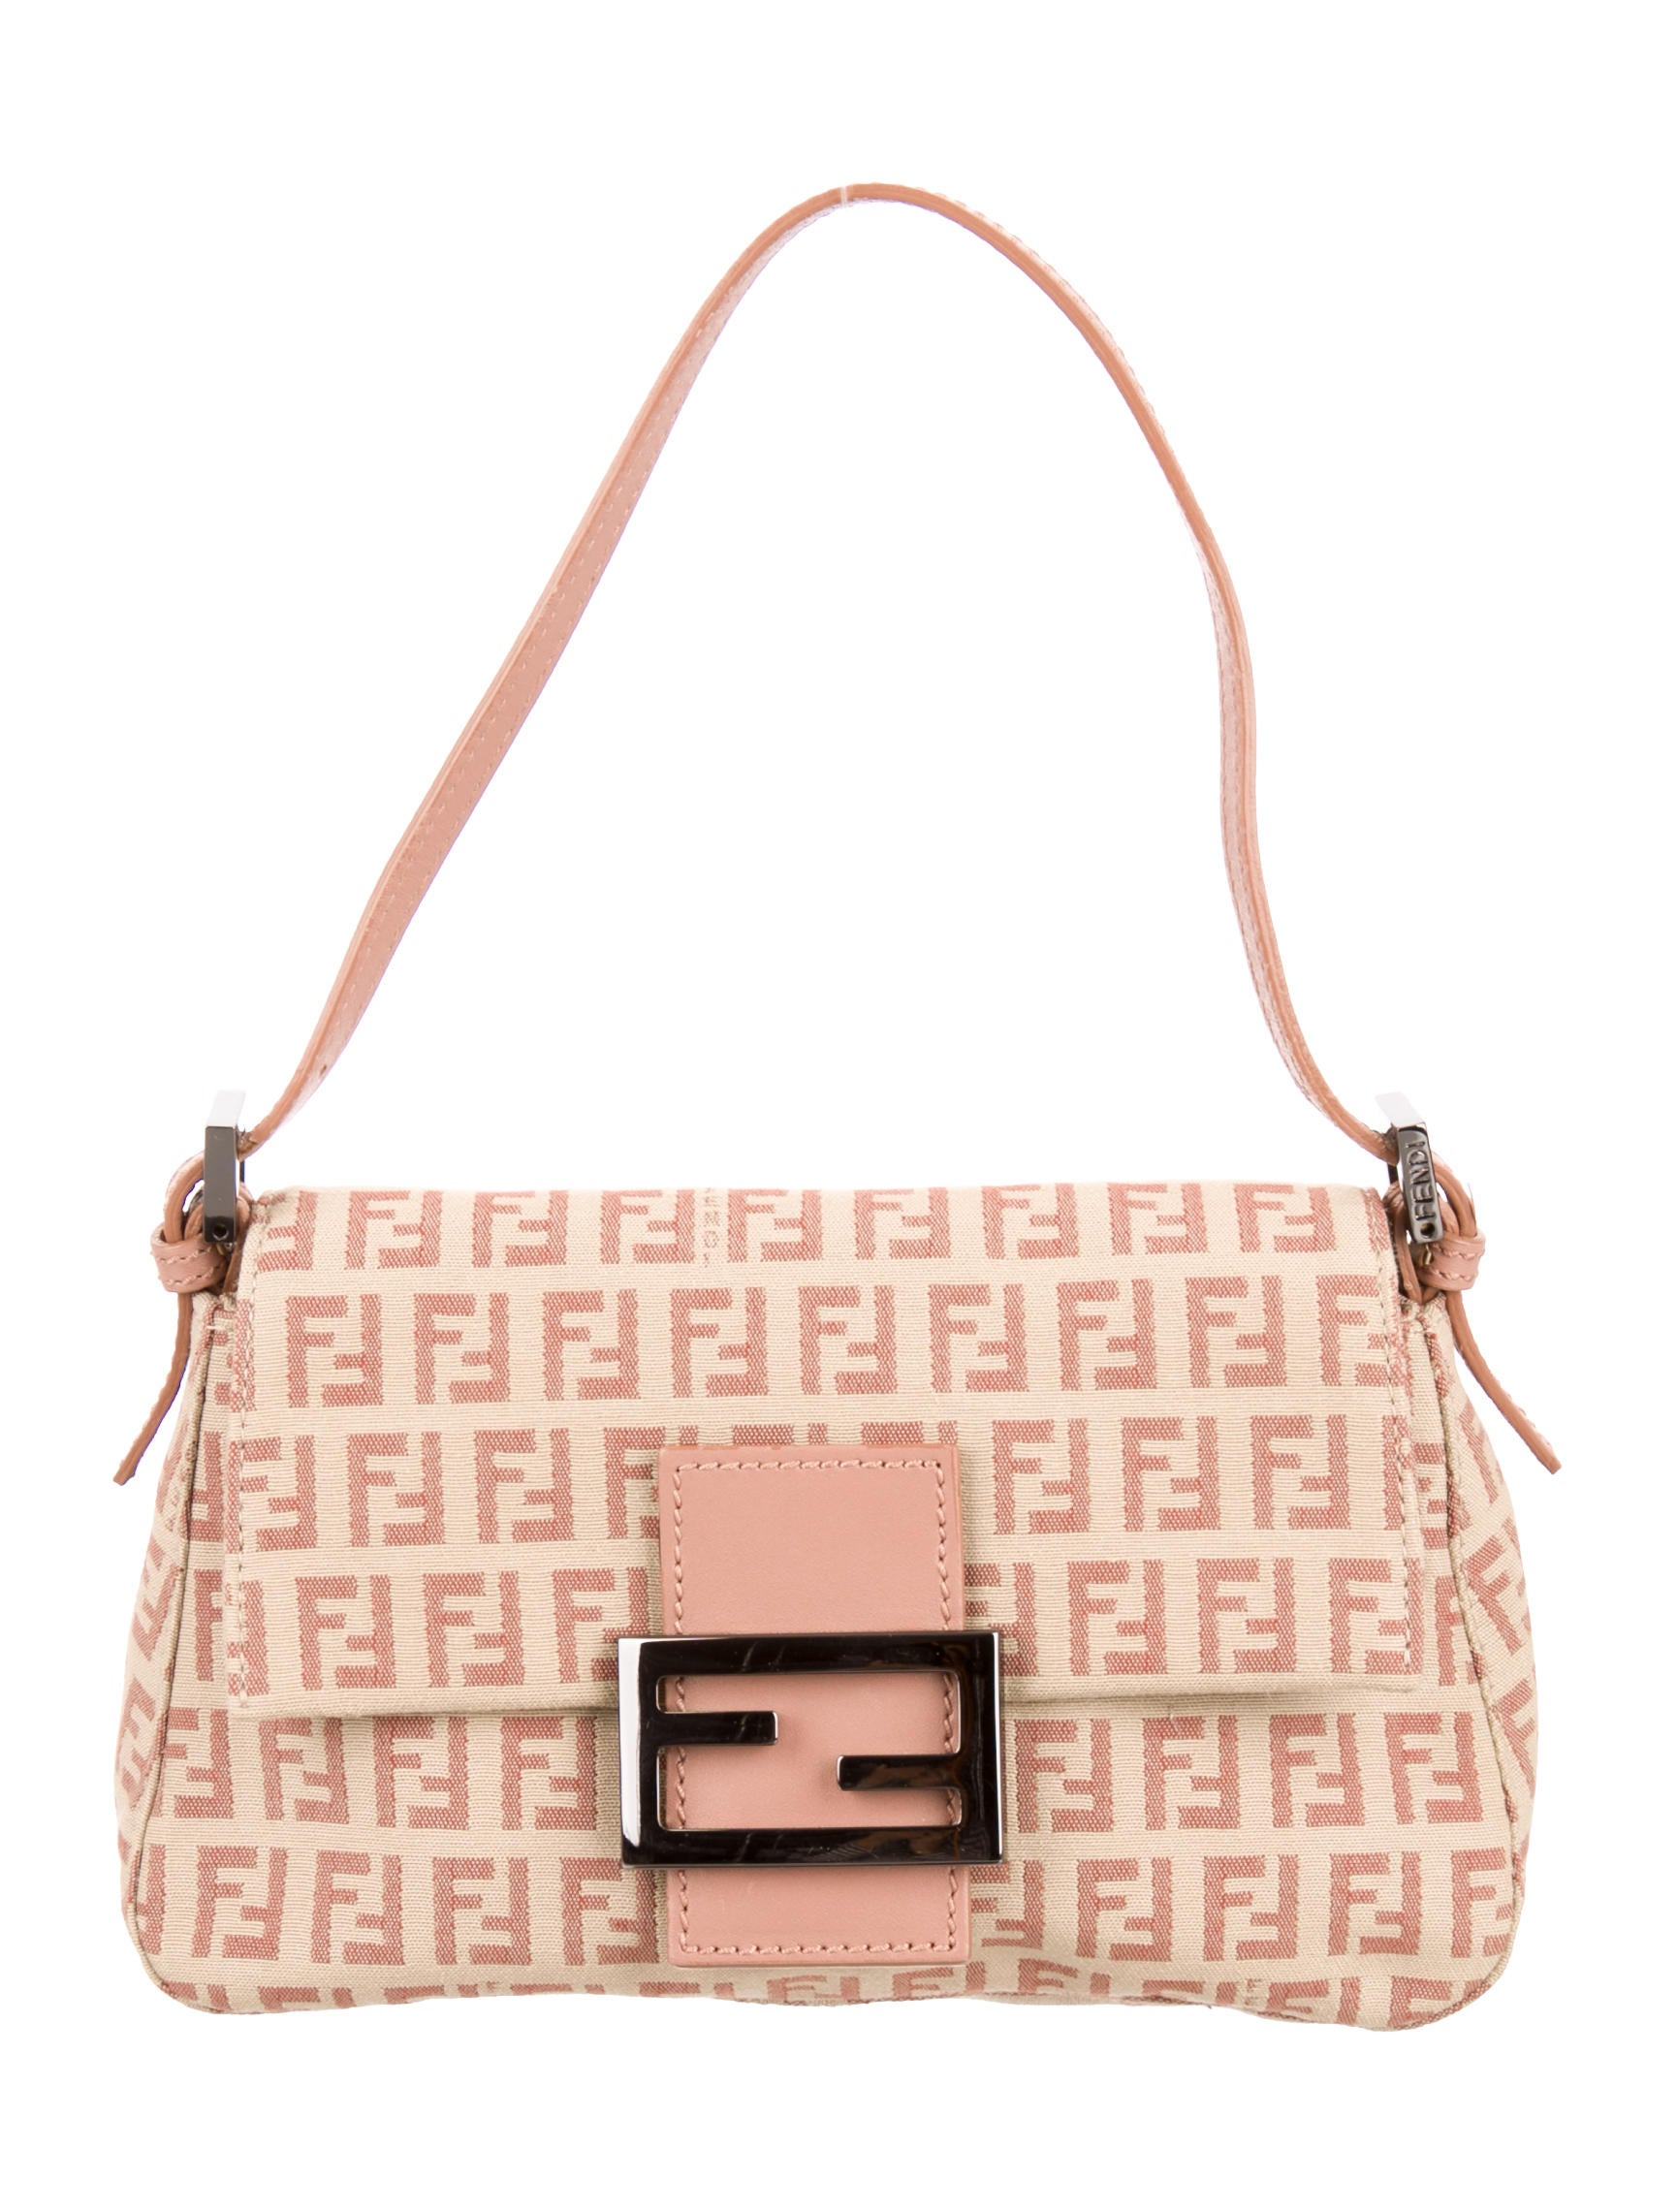 f46353c2f5912 Fendi Mini Zucchino Mama Forever Bag - Handbags - FEN38341